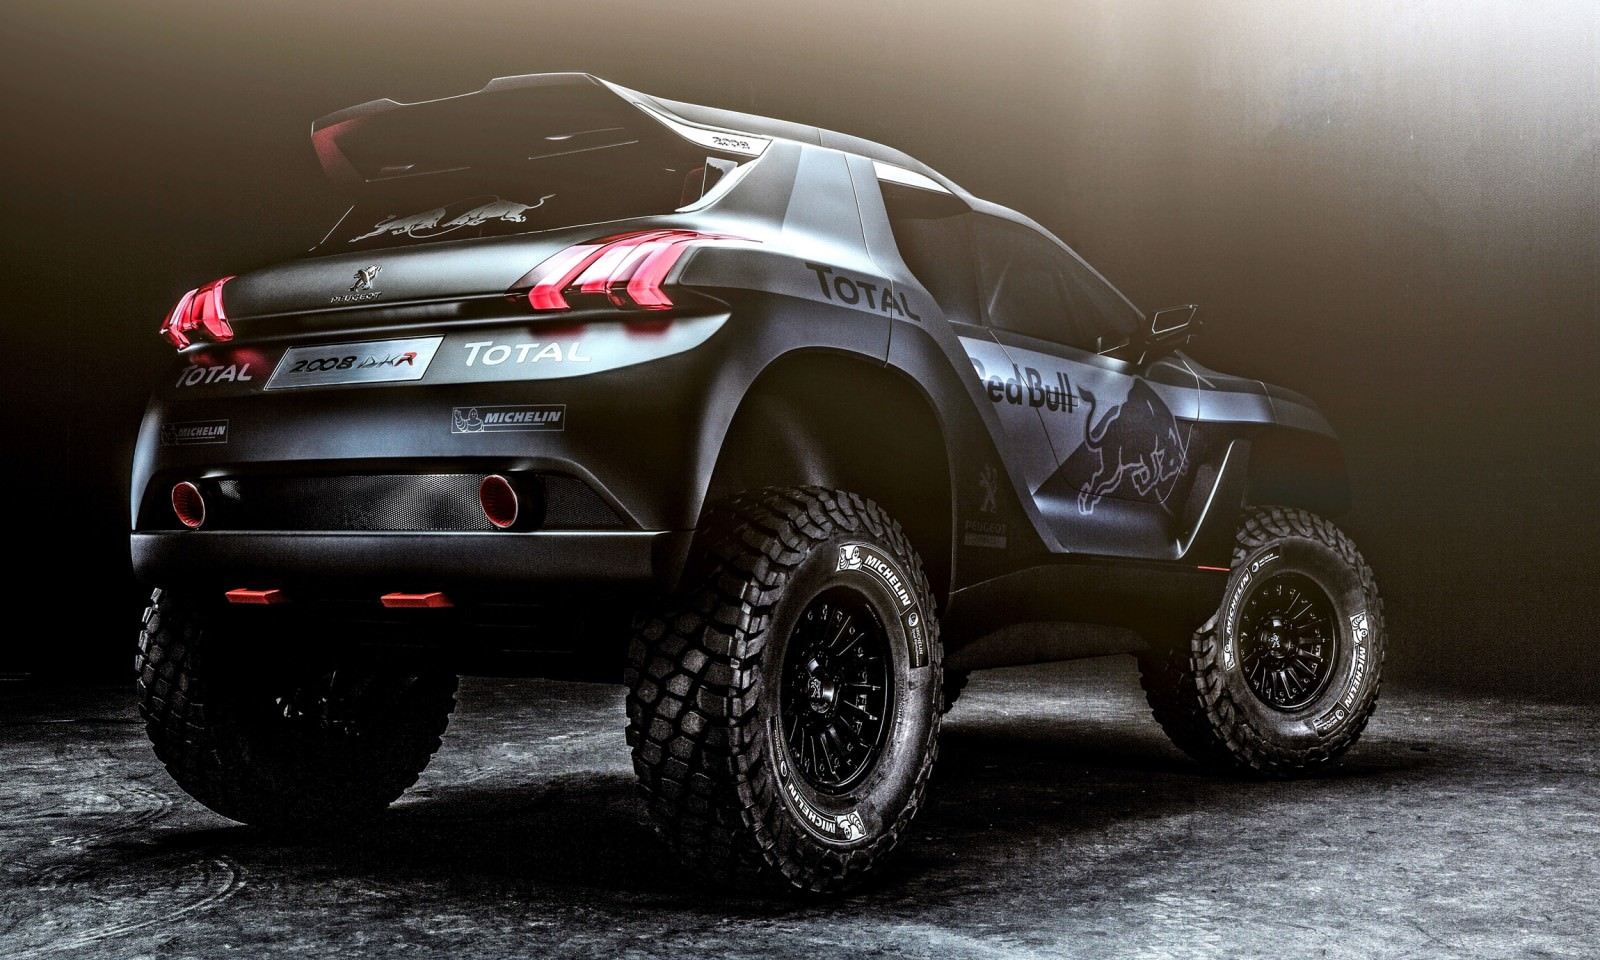 2015 peugeot 2008 dkr. Black Bedroom Furniture Sets. Home Design Ideas